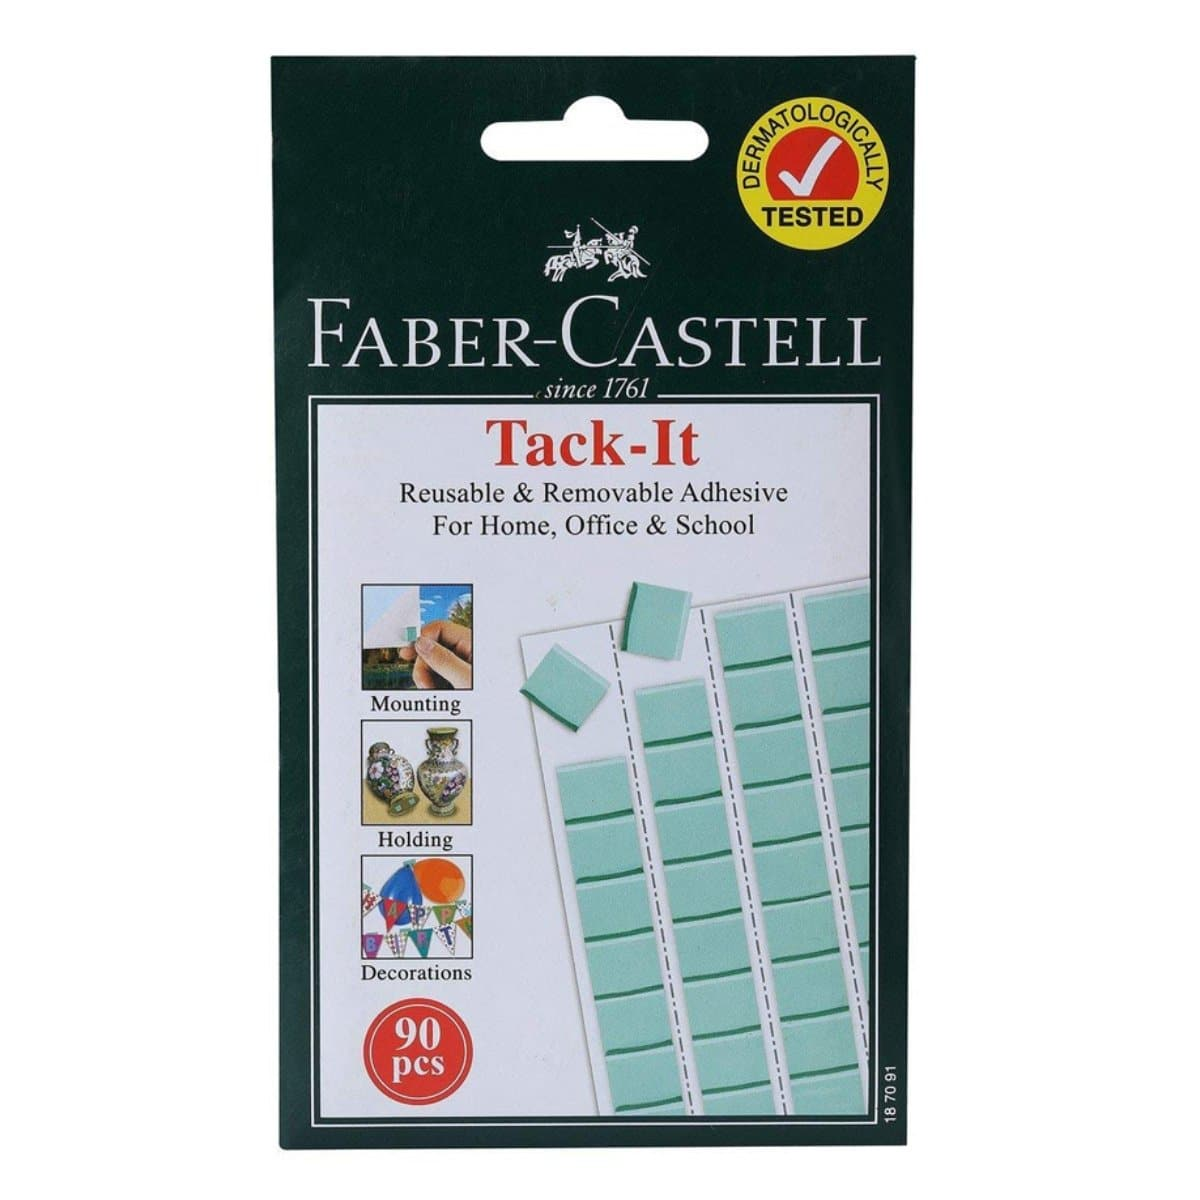 Faber Castell TACK-IT, Multipurpose Adhesive Tack, 90/pack